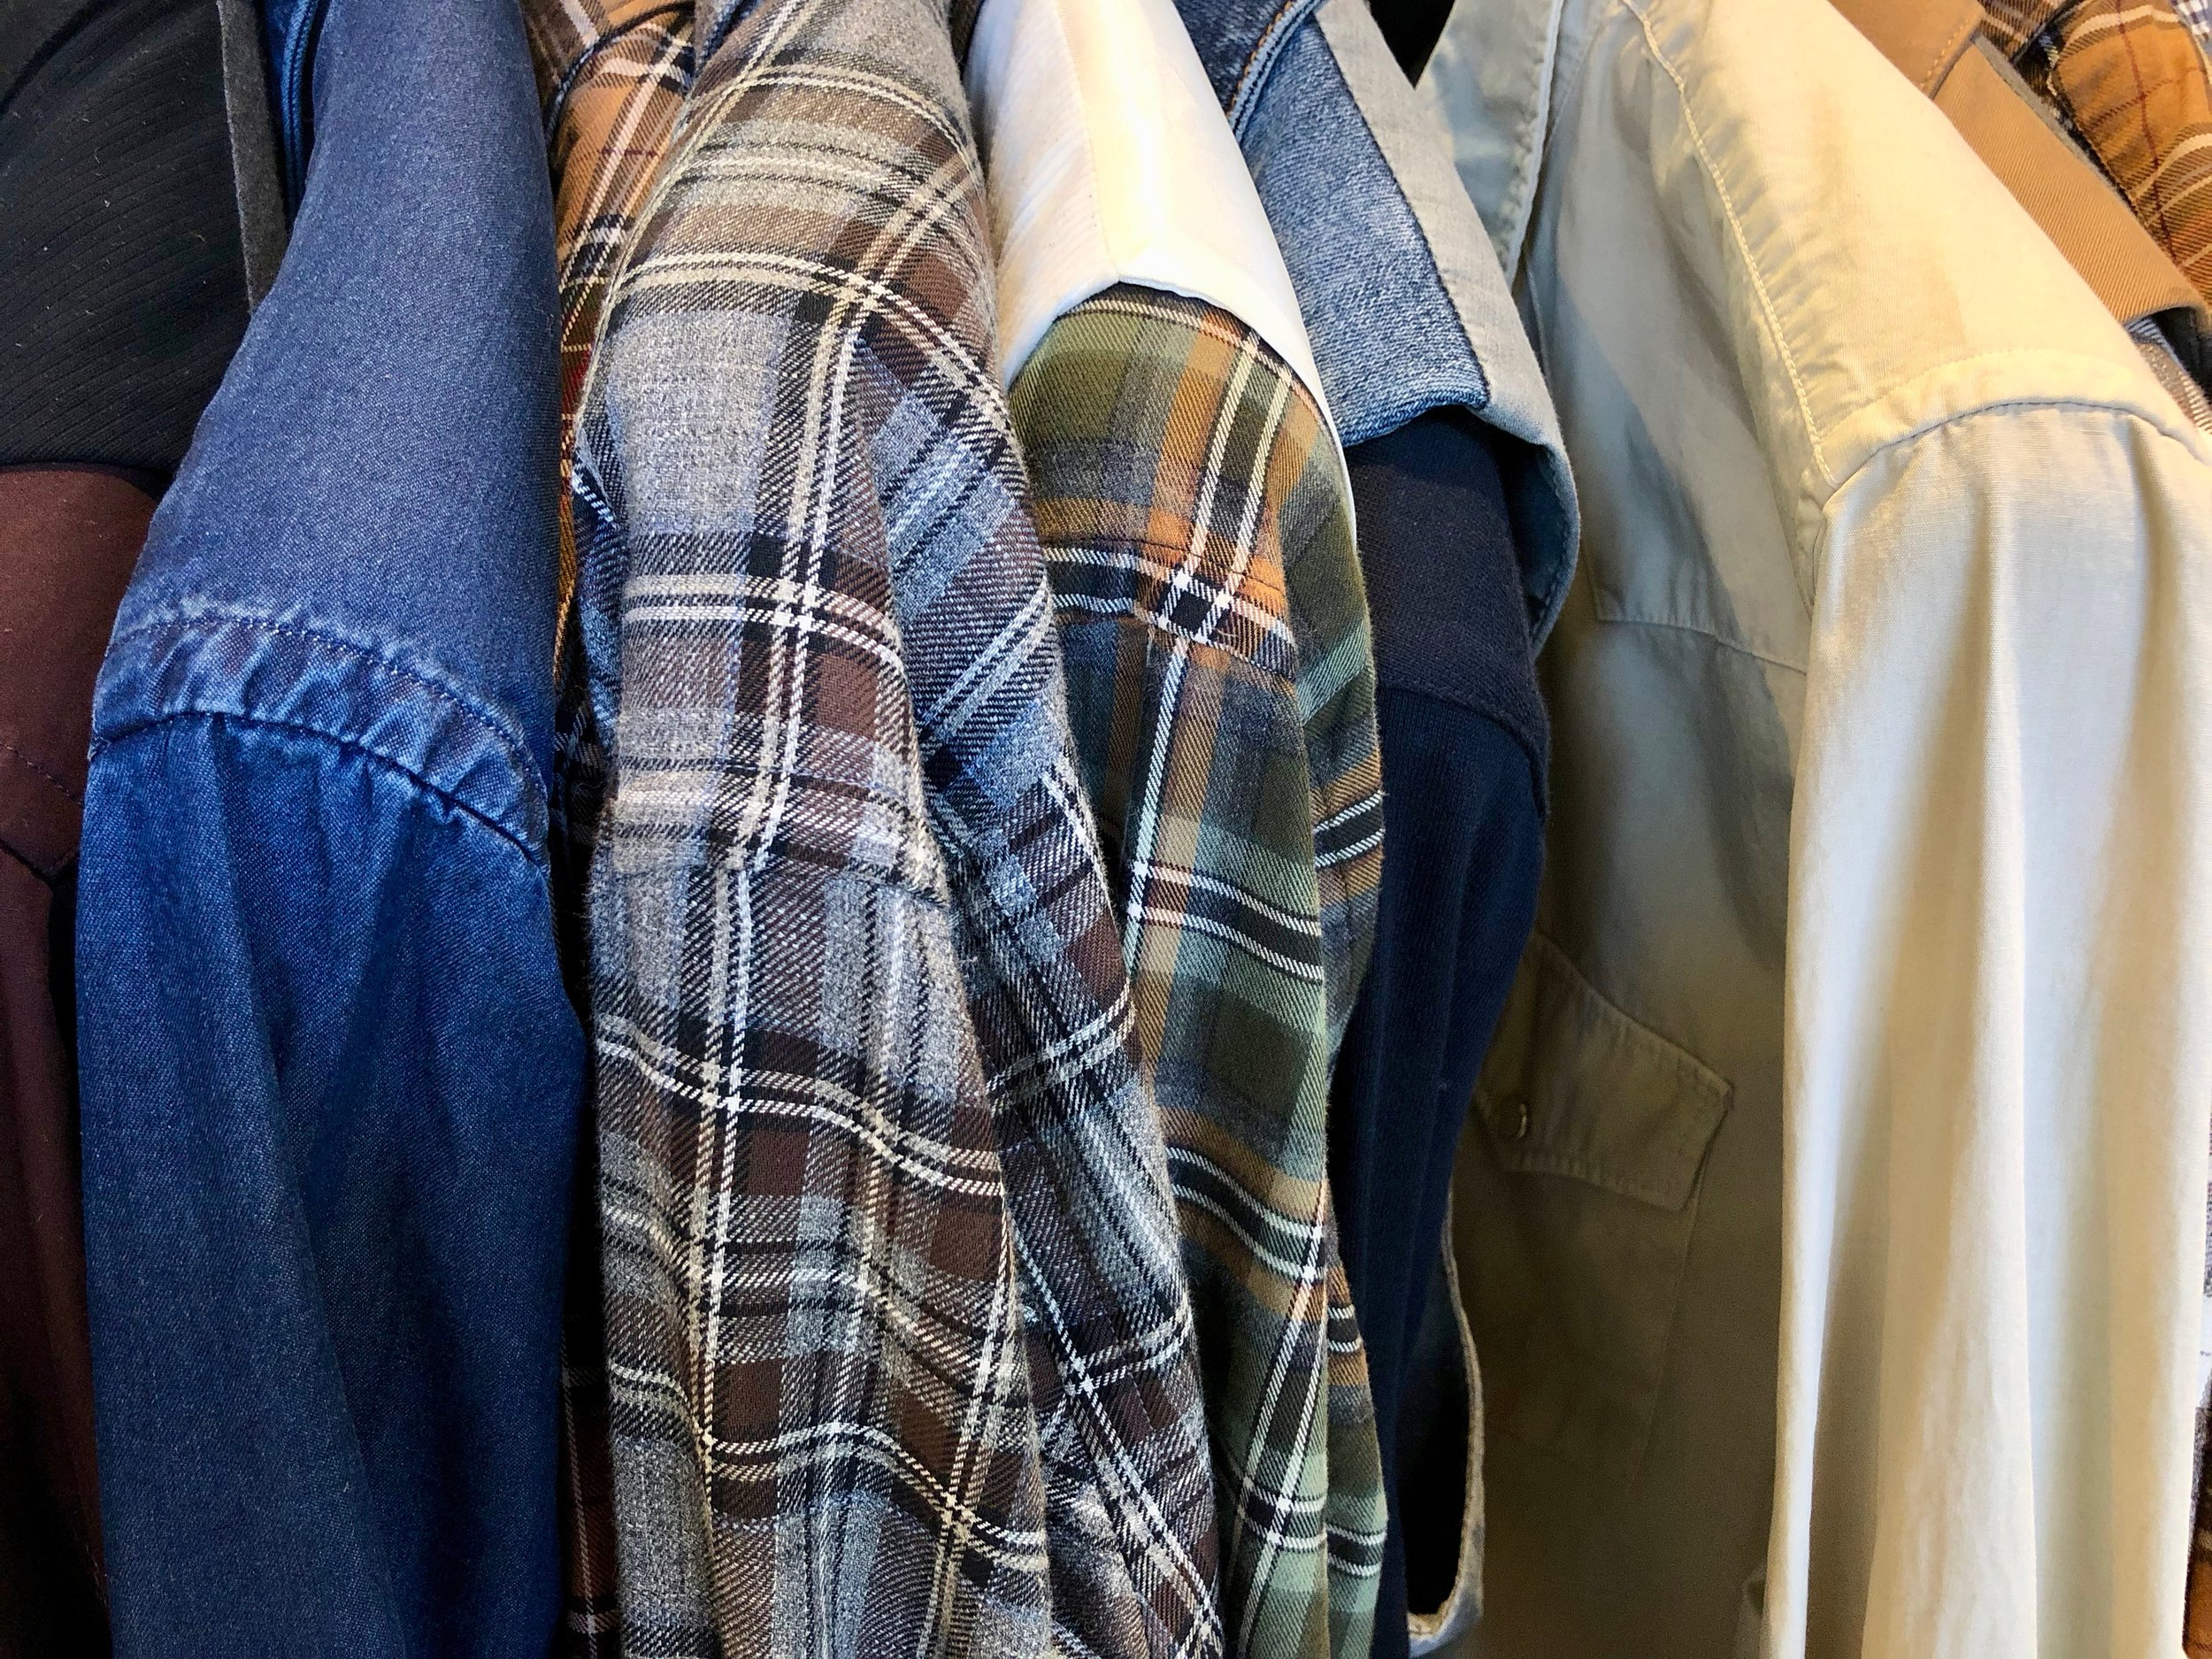 Close-up of a dizzying choice of shirts.  Photo credit: @LucaMontini